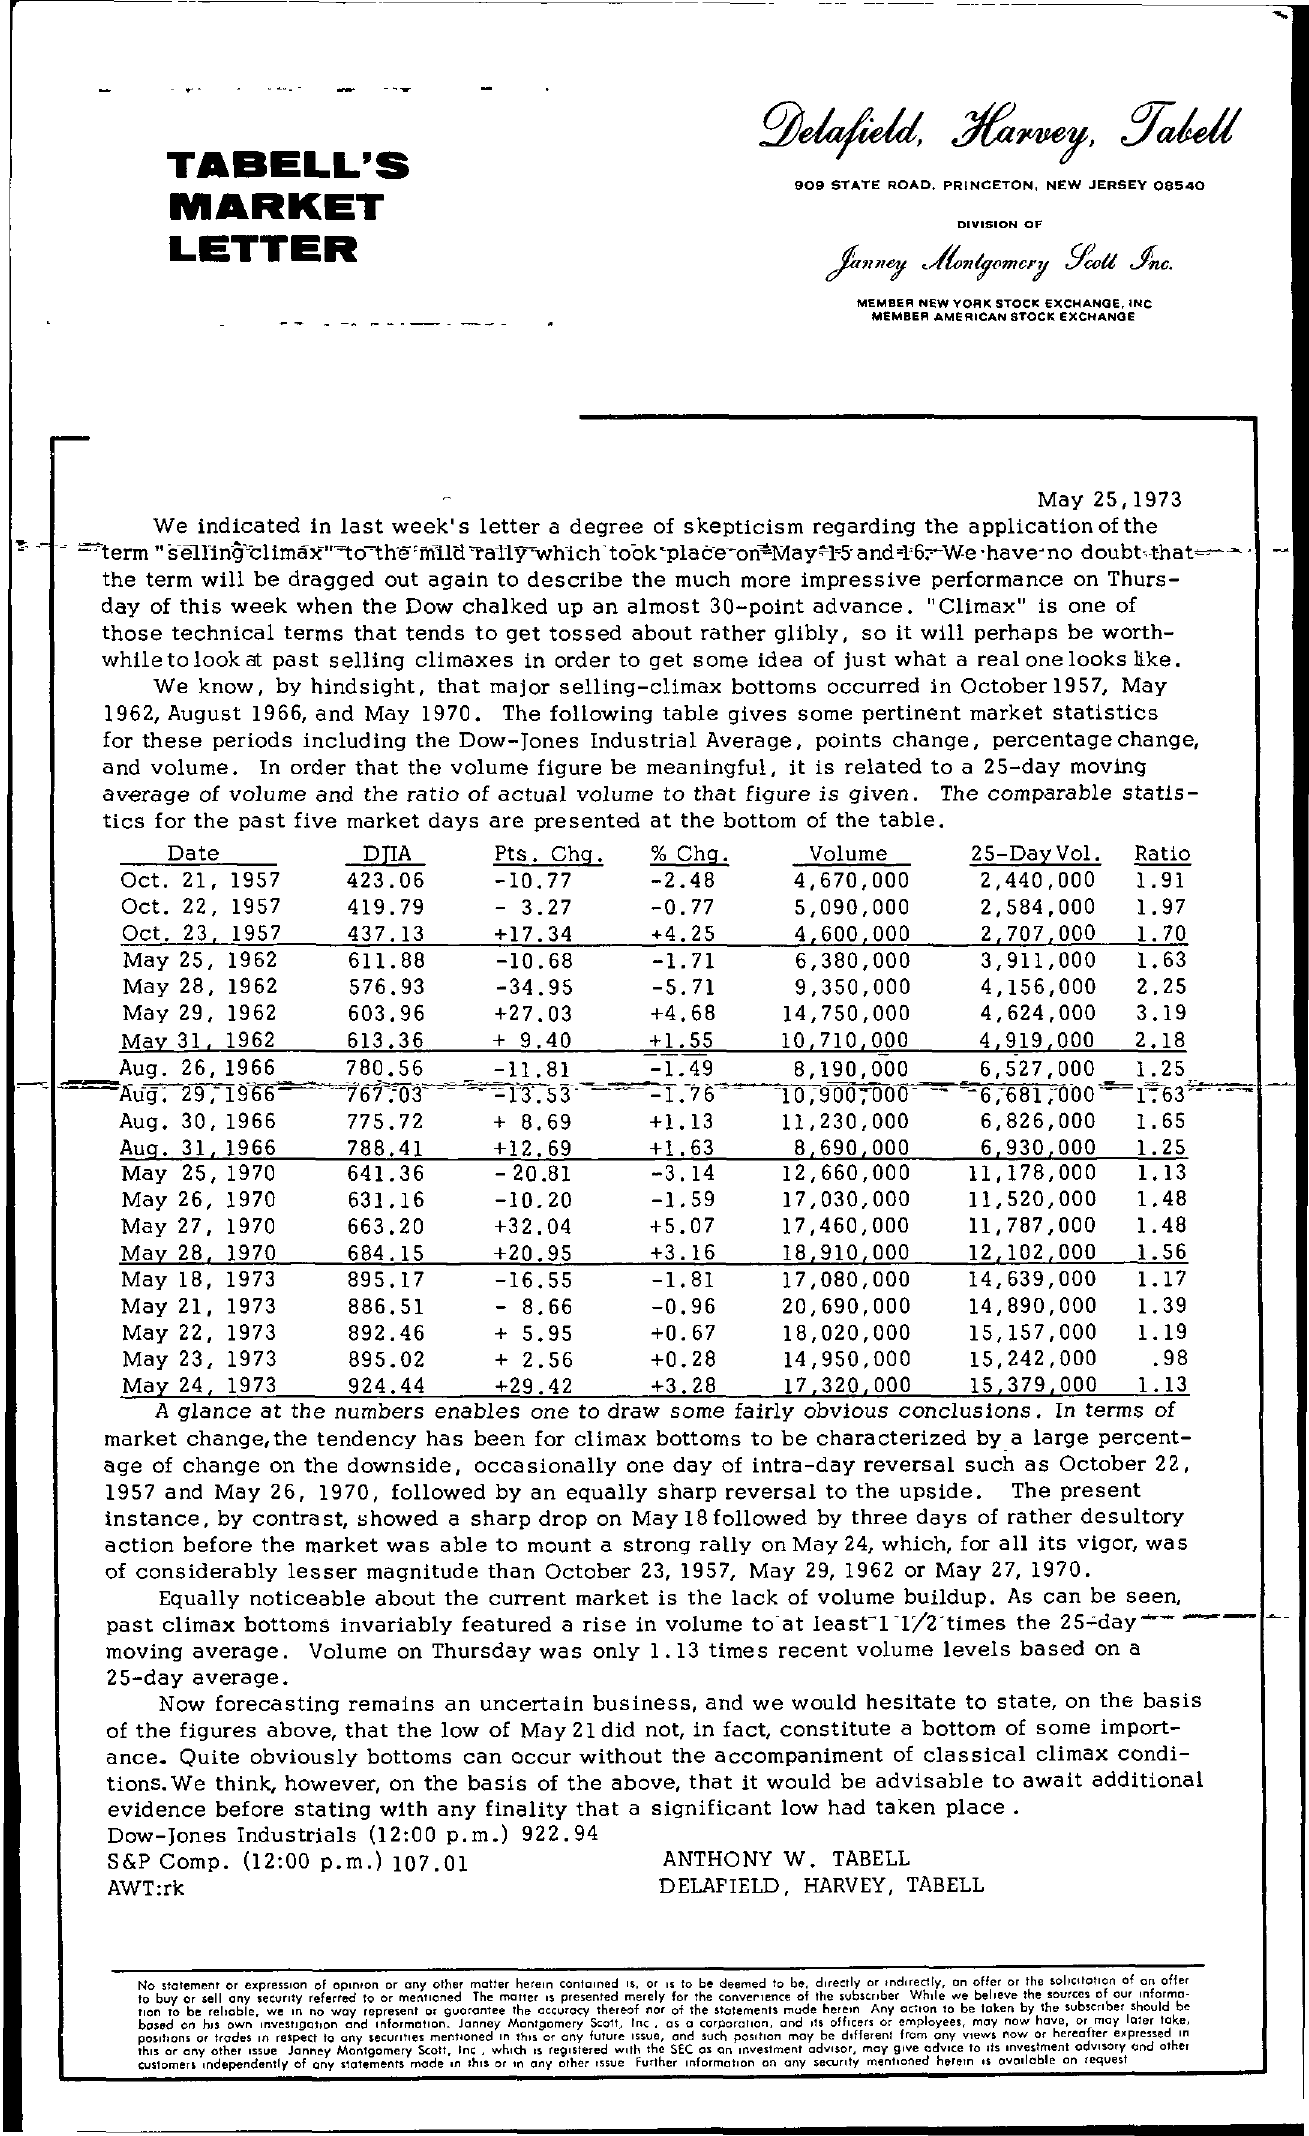 Tabell's Market Letter - May 25, 1973